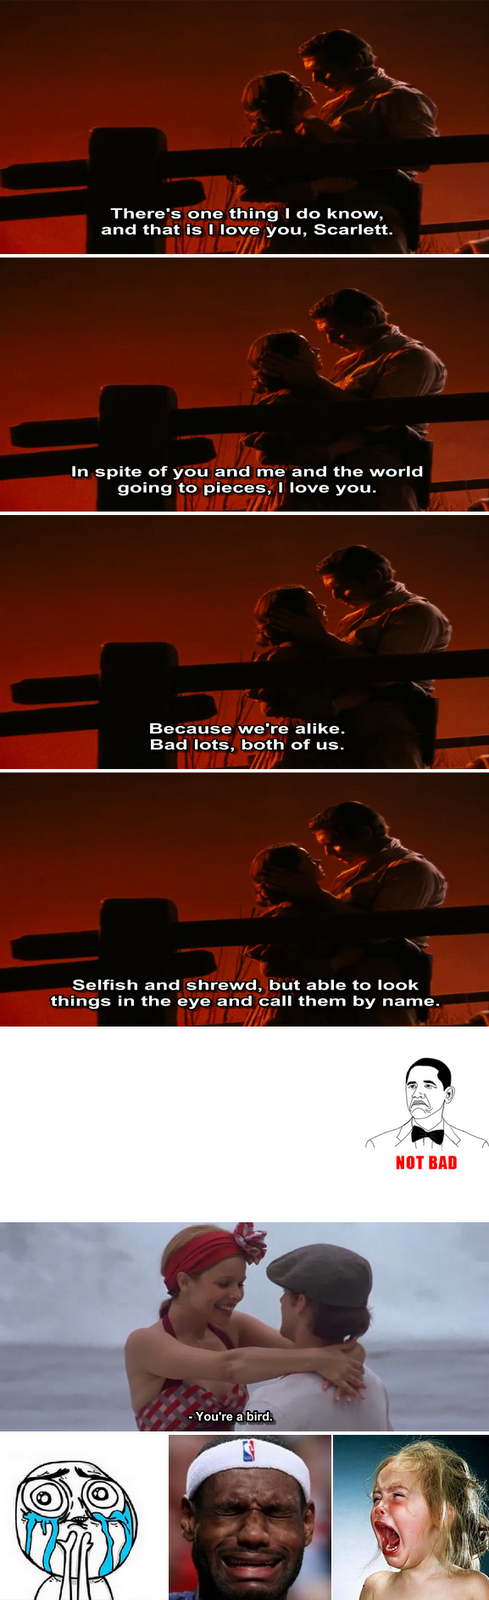 ... _VS_New_Romance-Movies-Quotes-The_Notebook_VS_Gone_With_The_Wind.png